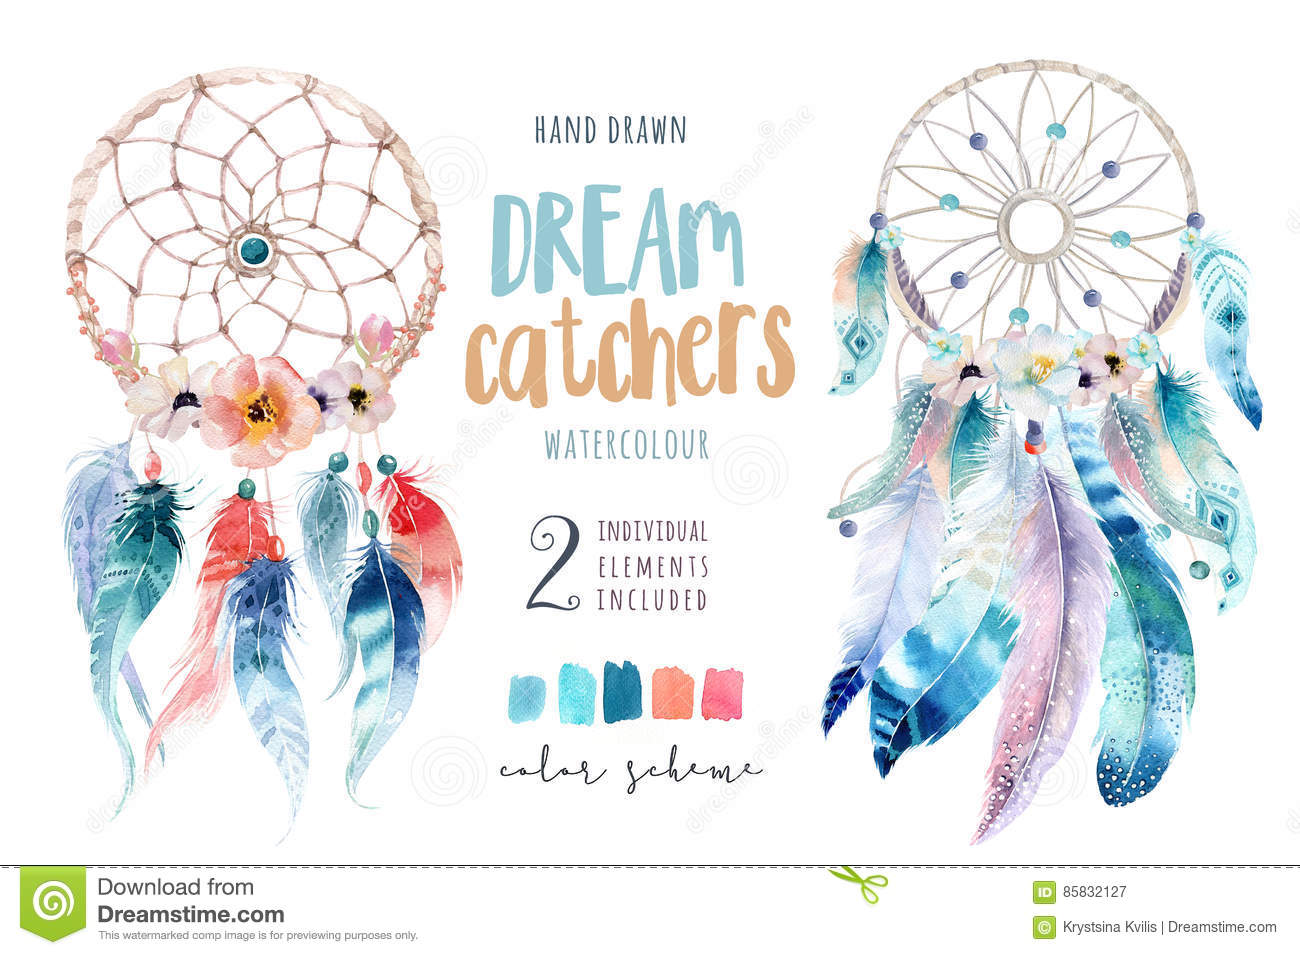 Dreamcatcher d isolement de bohémien de décoration d aquarelle Boho